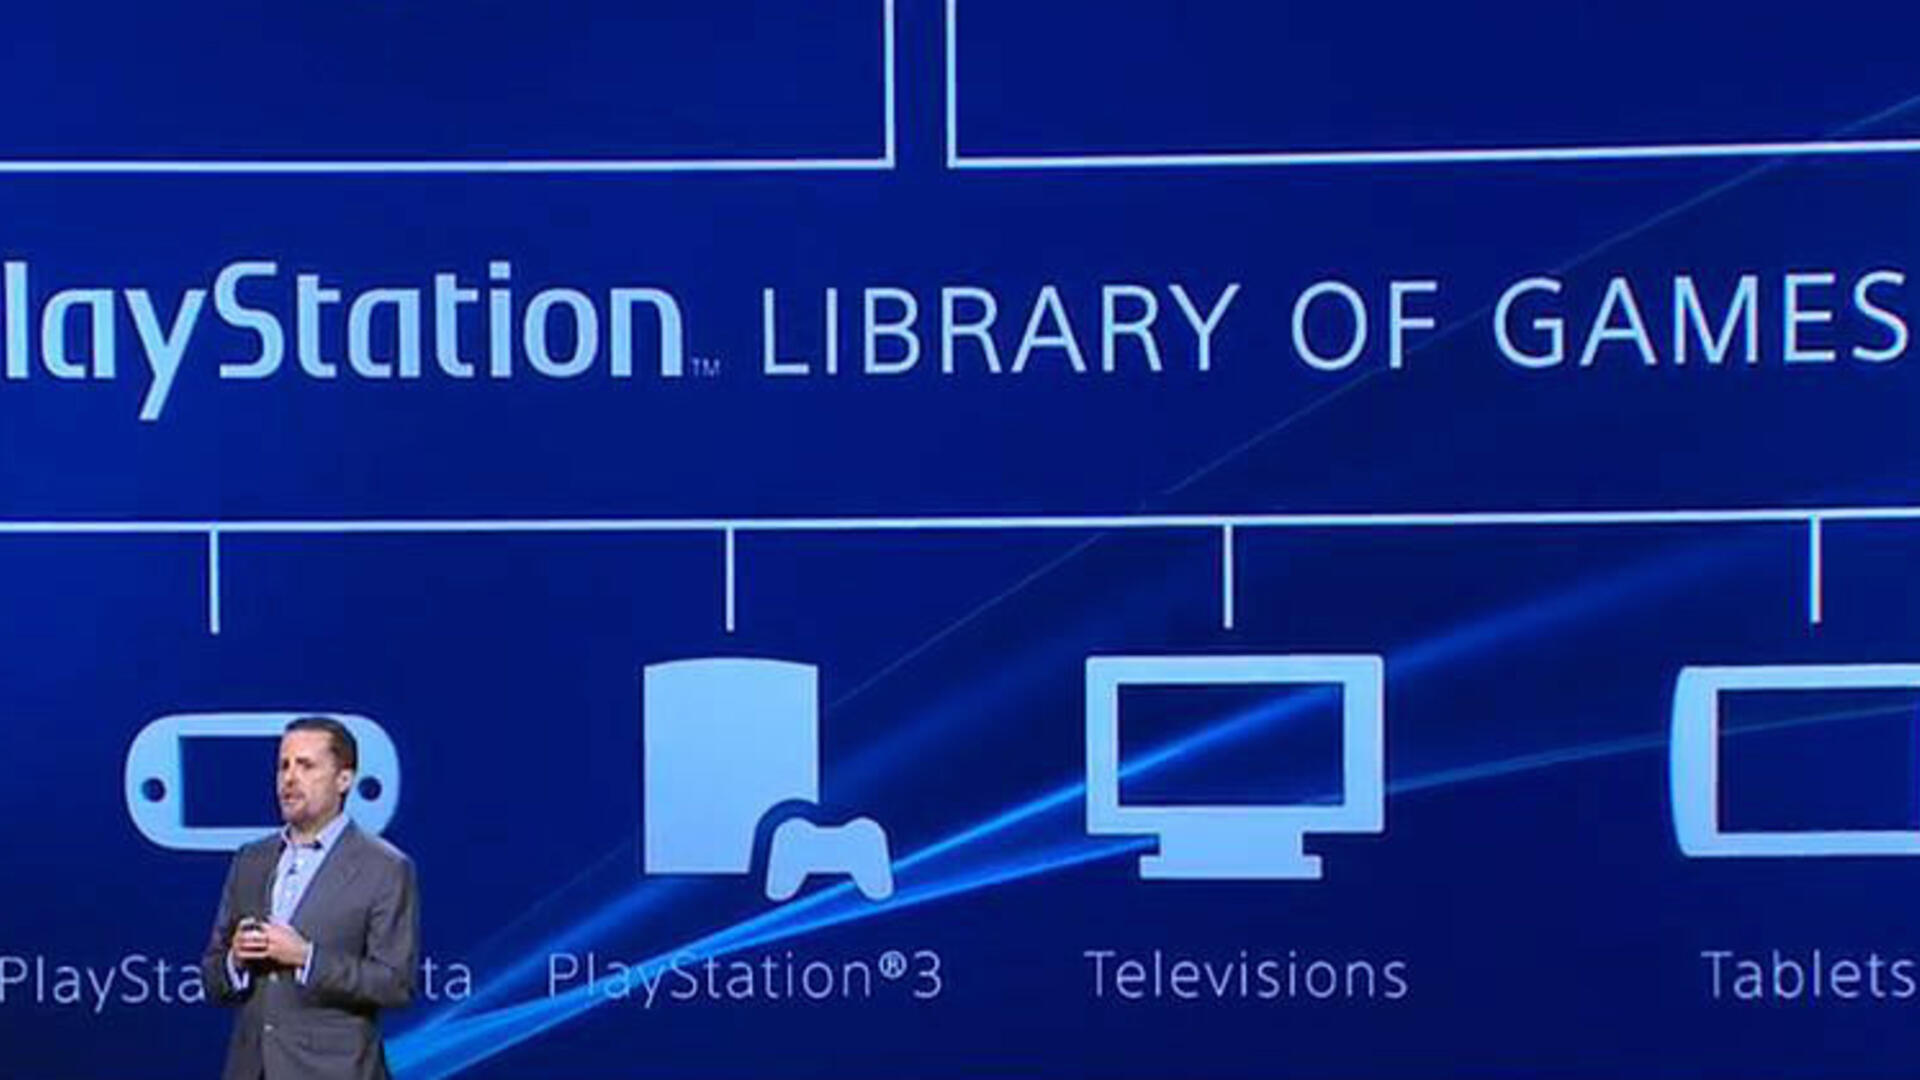 Rental Options Spotted on PSN, Possibly PlayStation Now-Related